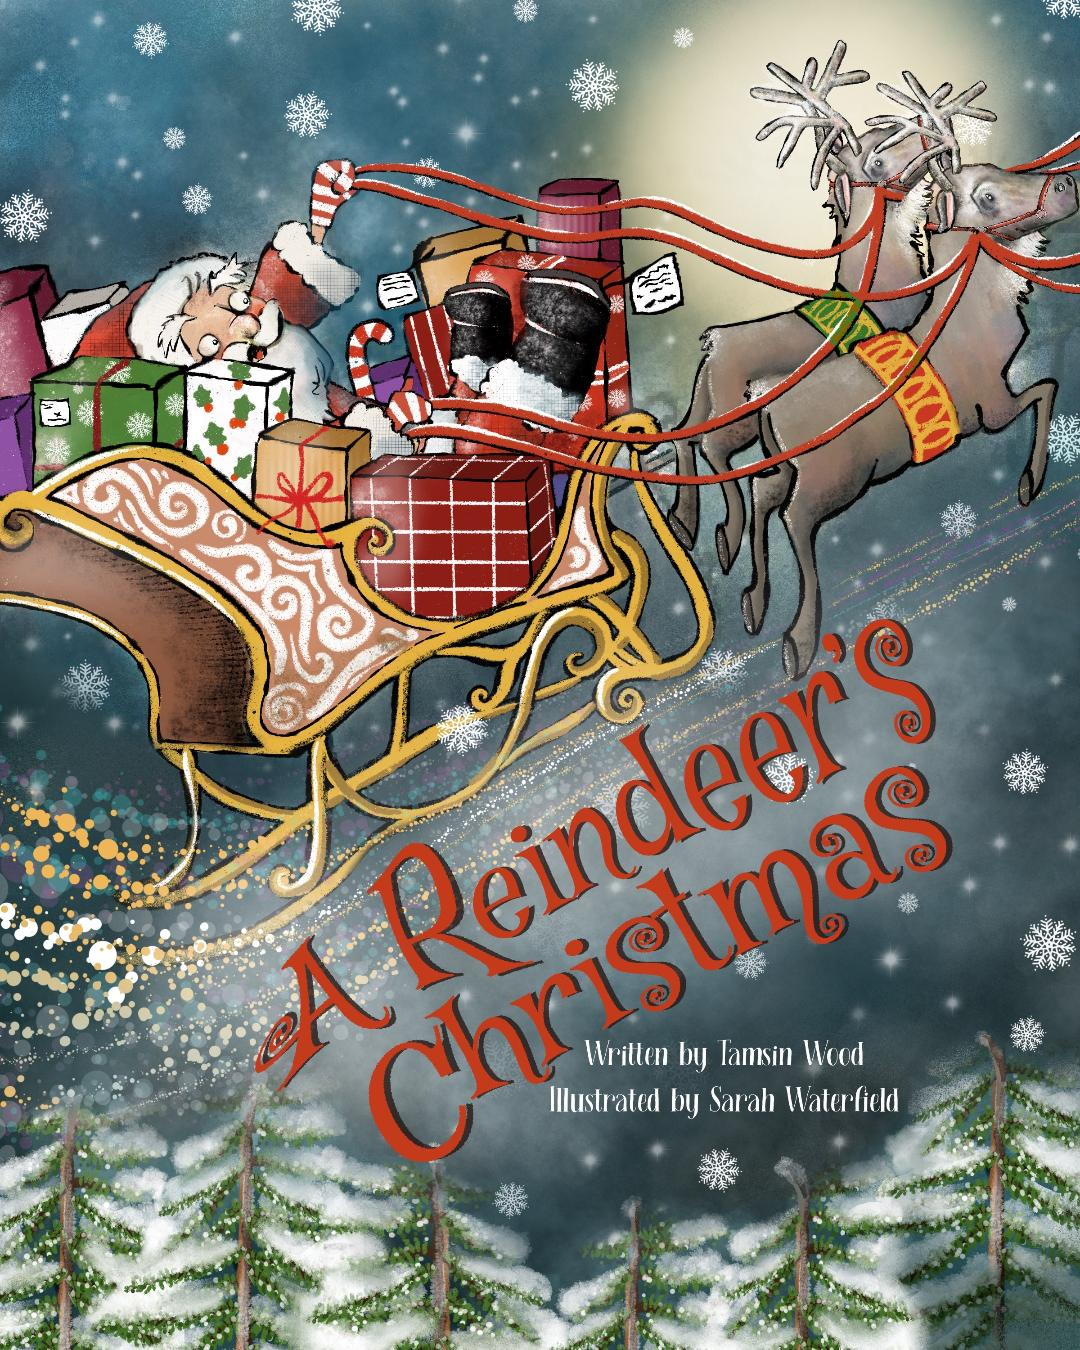 A Reindeer's Christmas by Tamsin Wood Children's Book Review